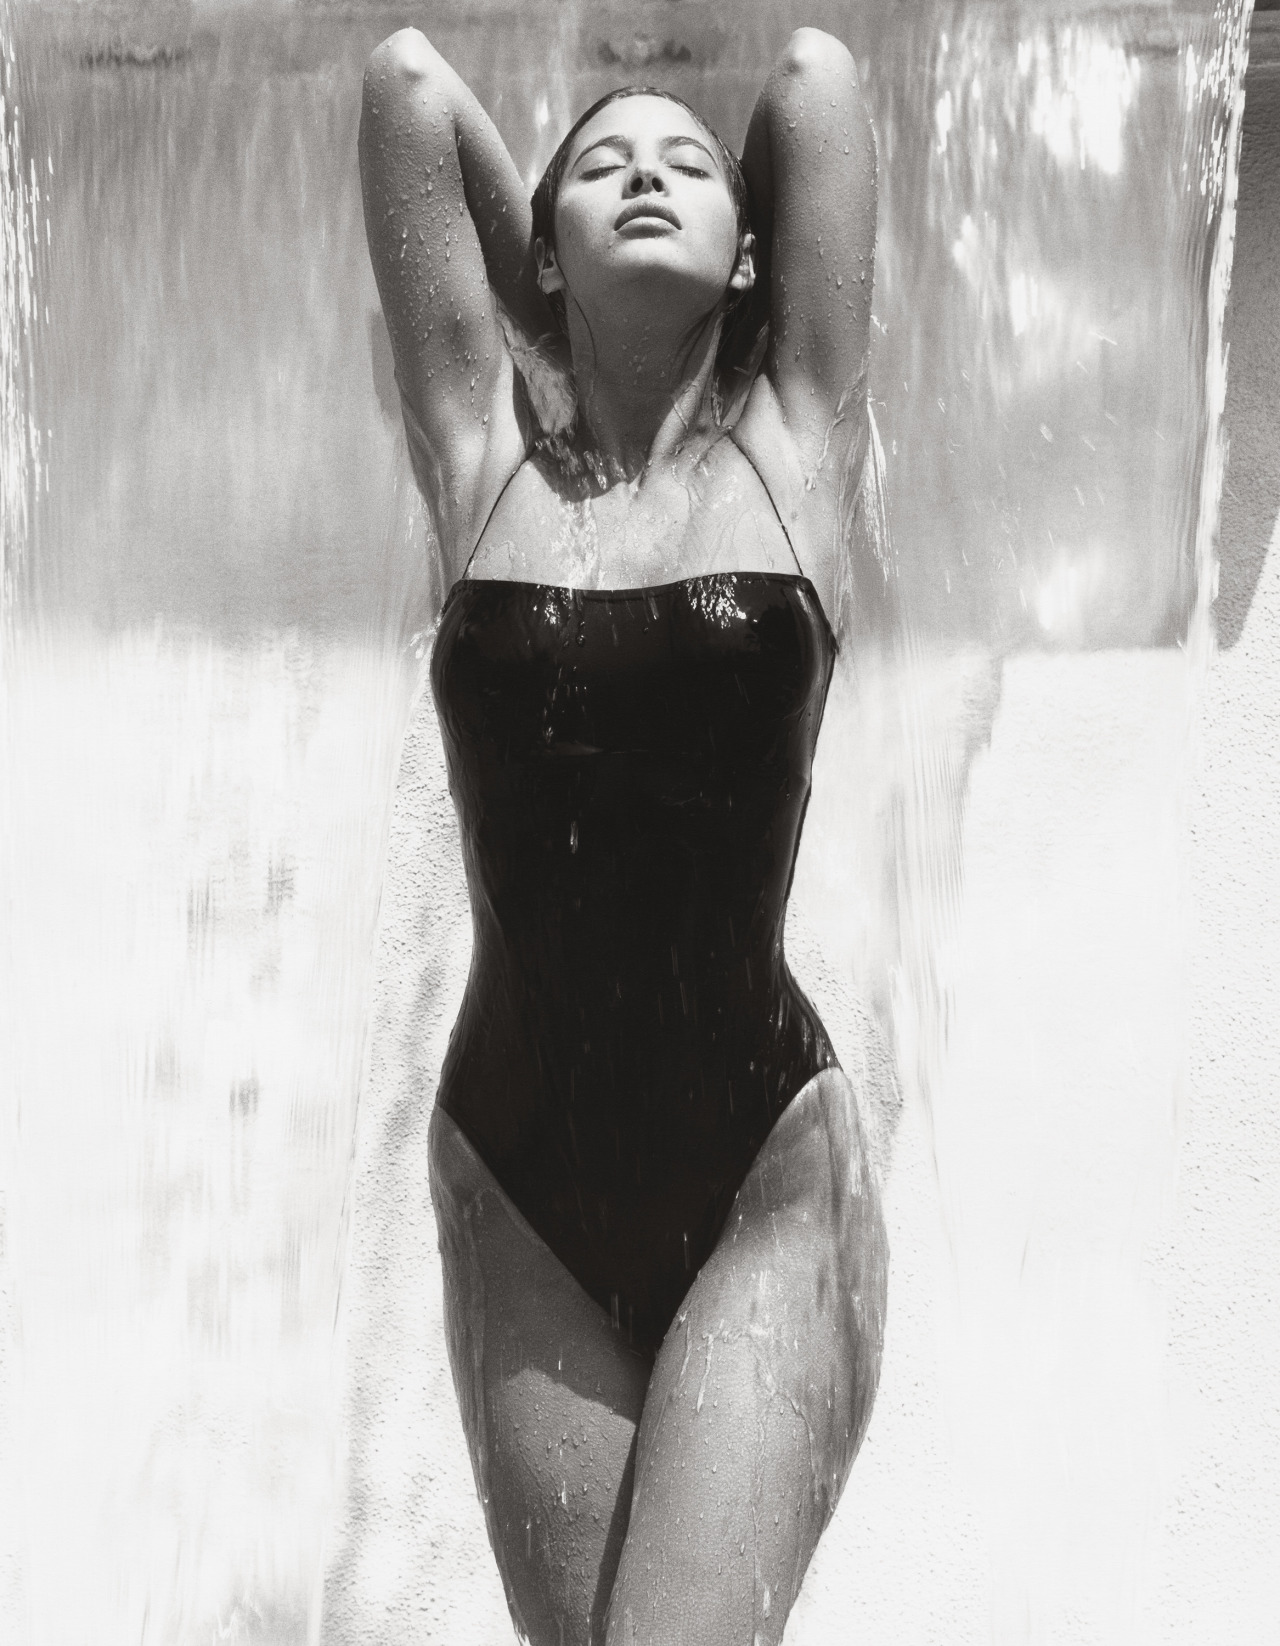 Christy x Herb Ritts